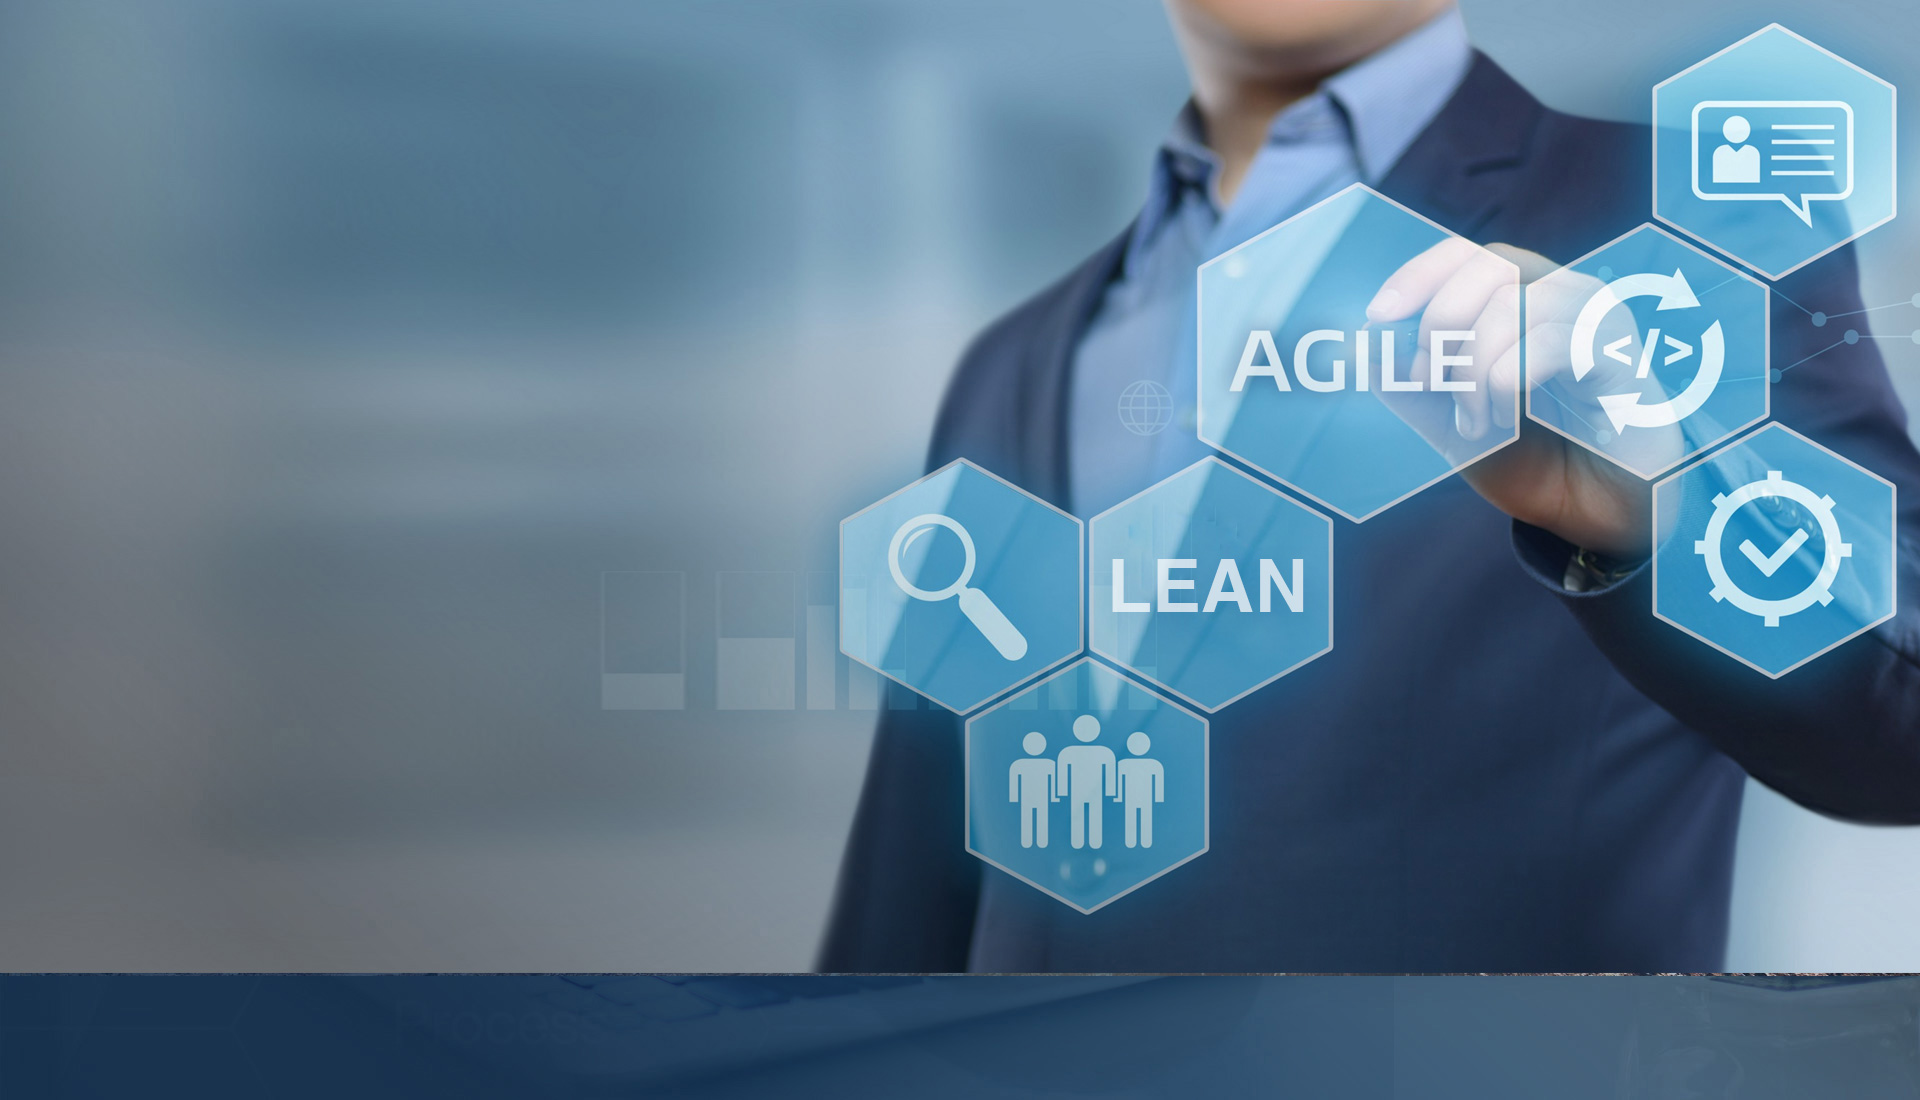 LEAN-AGILE Management